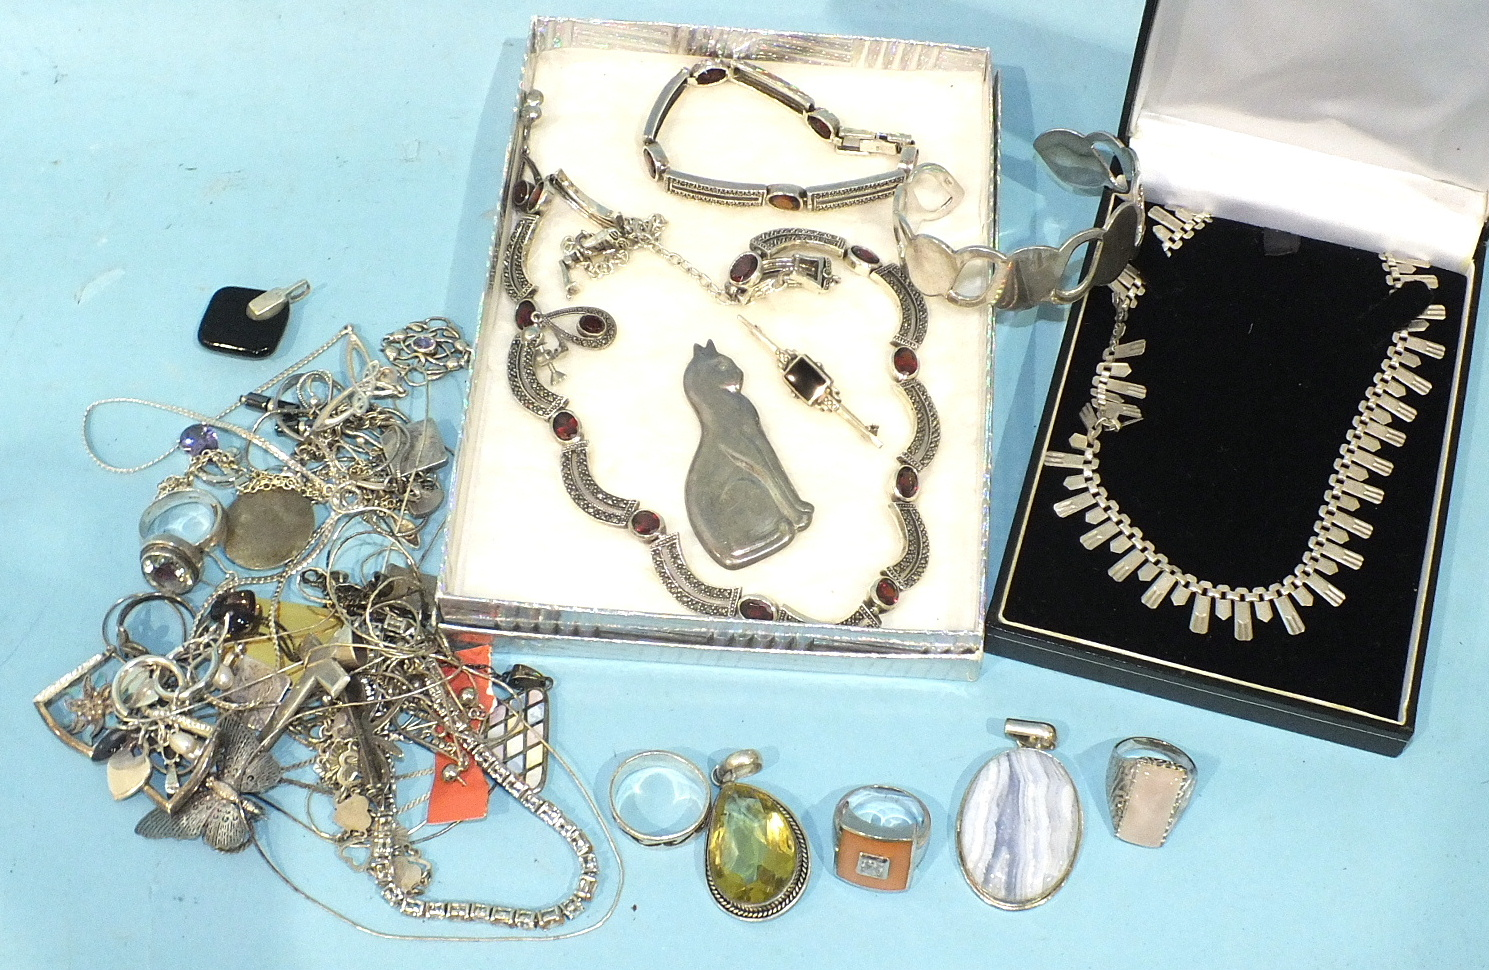 Lot 211 - A silver necklace, bracelet and earrings set marcasite and garnets, a silver fringe necklace and